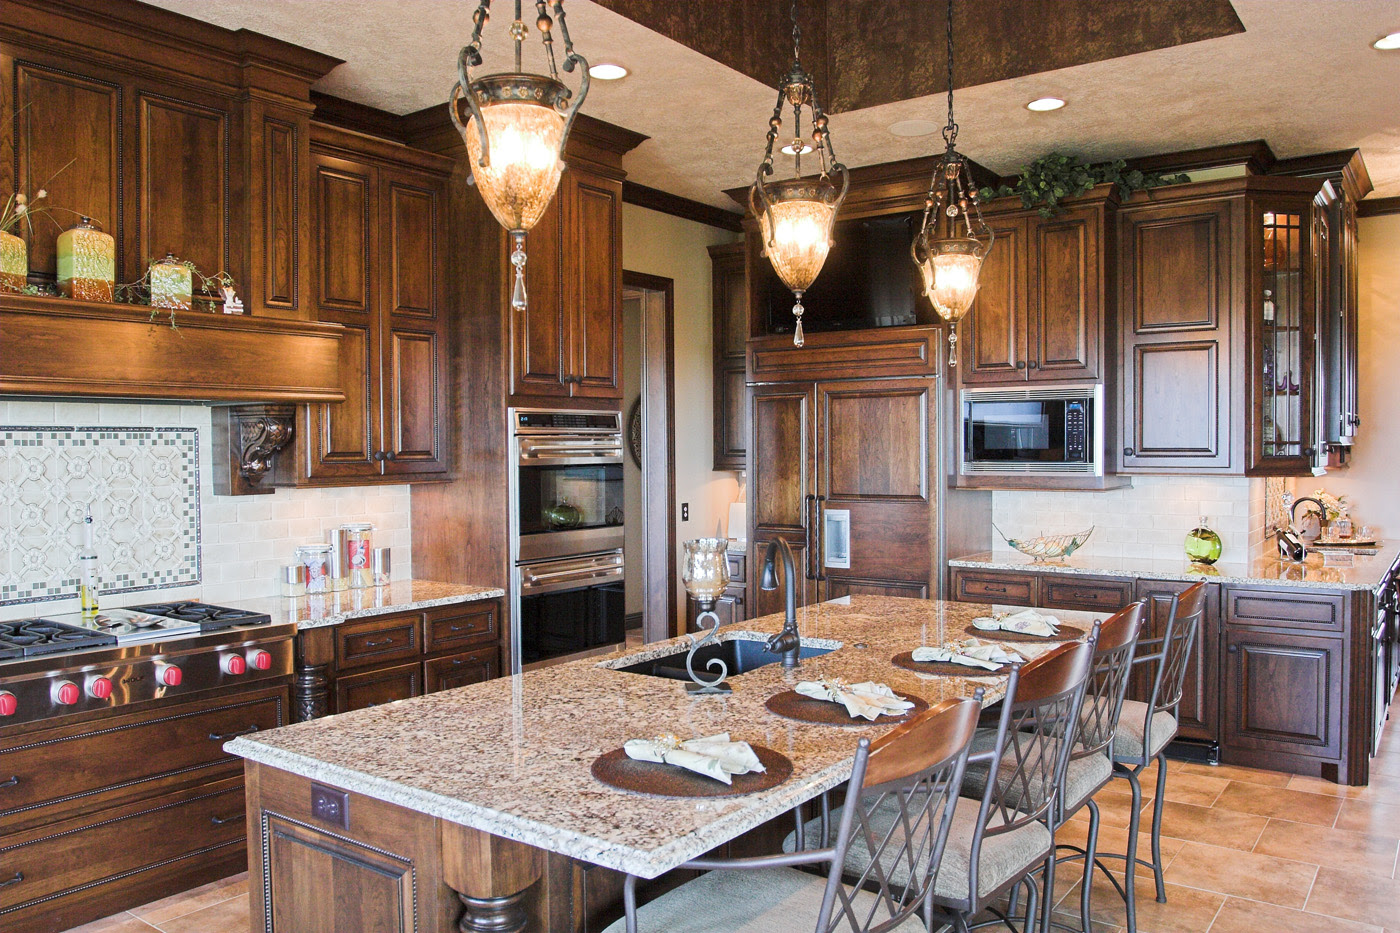 Sioux Falls Kitchen and Bath